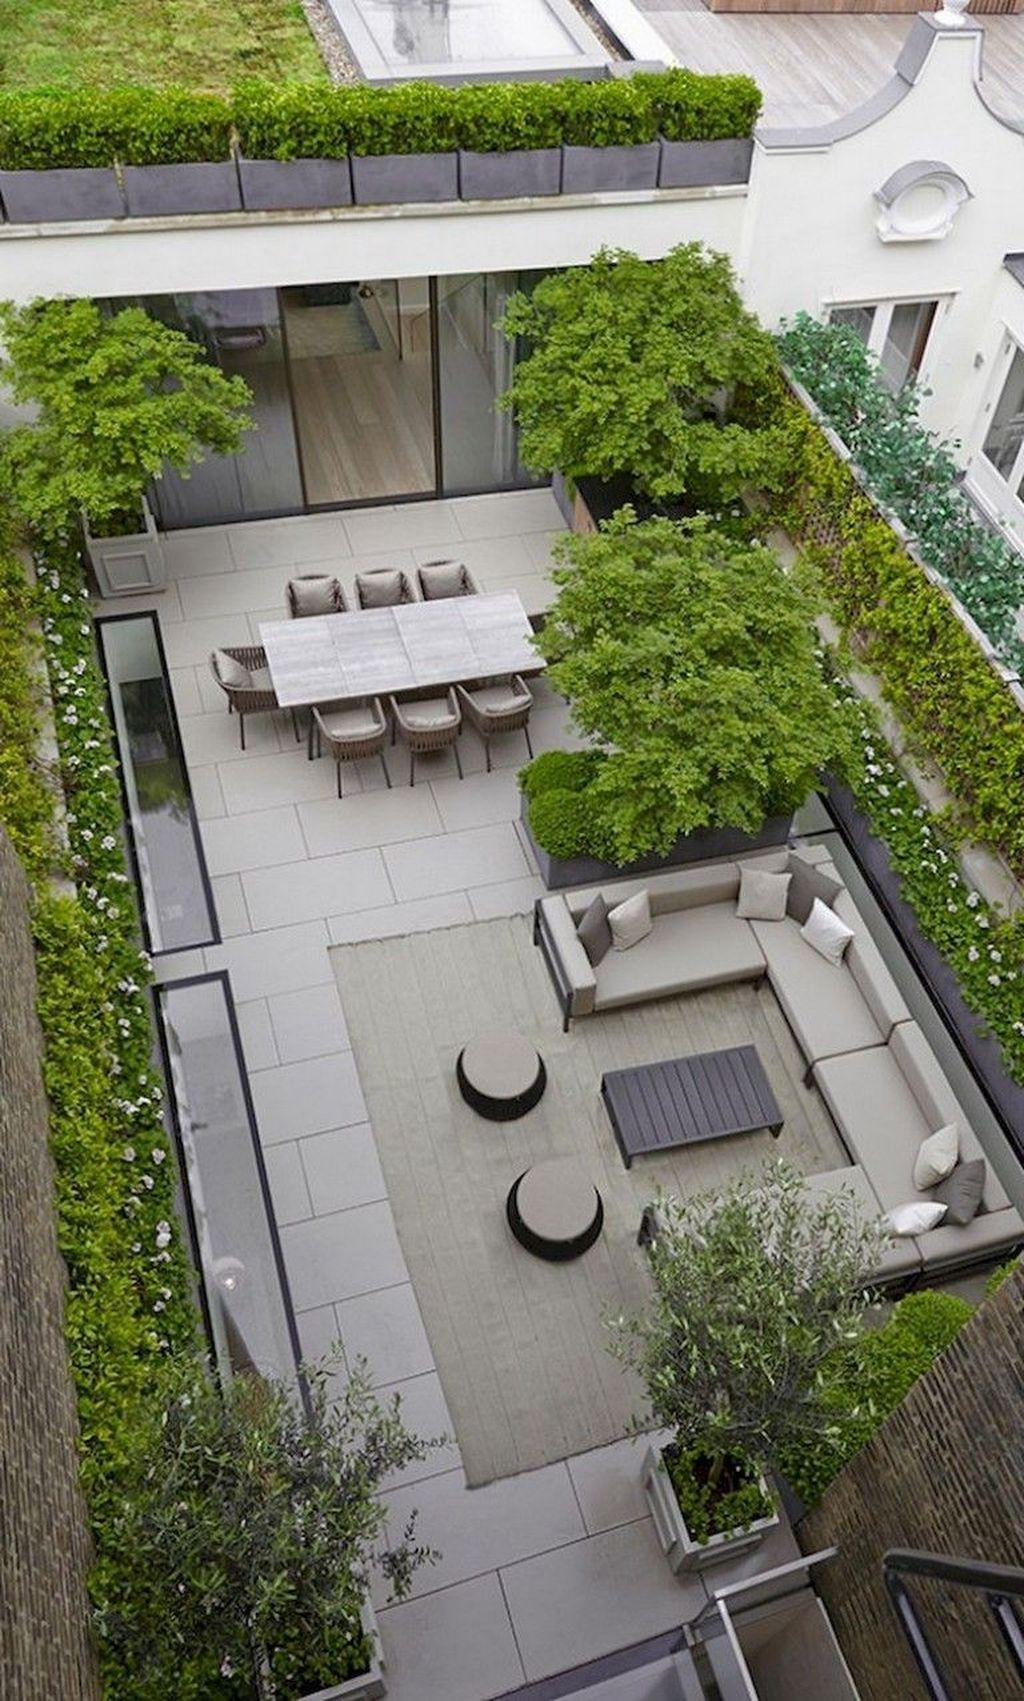 30 Attractive Terrace Design Ideas For Home On A Budget To Have In 2020 Small Backyard Garden Design Roof Garden Design Backyard Garden Layout